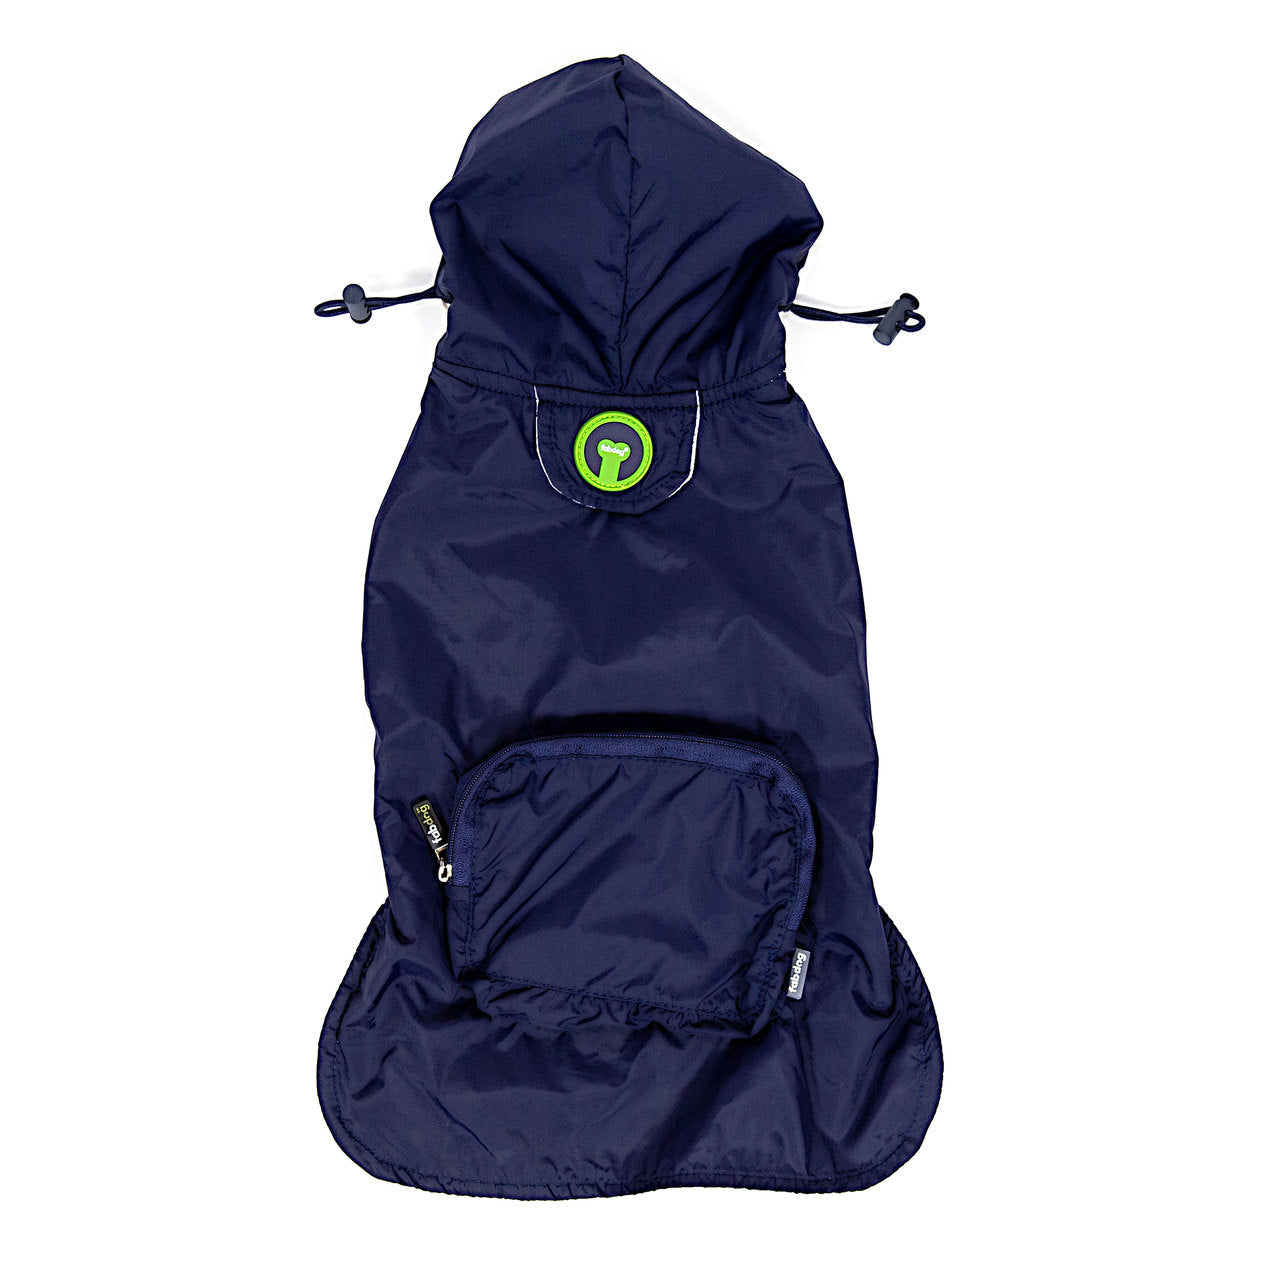 Navy Packaway Raincoat